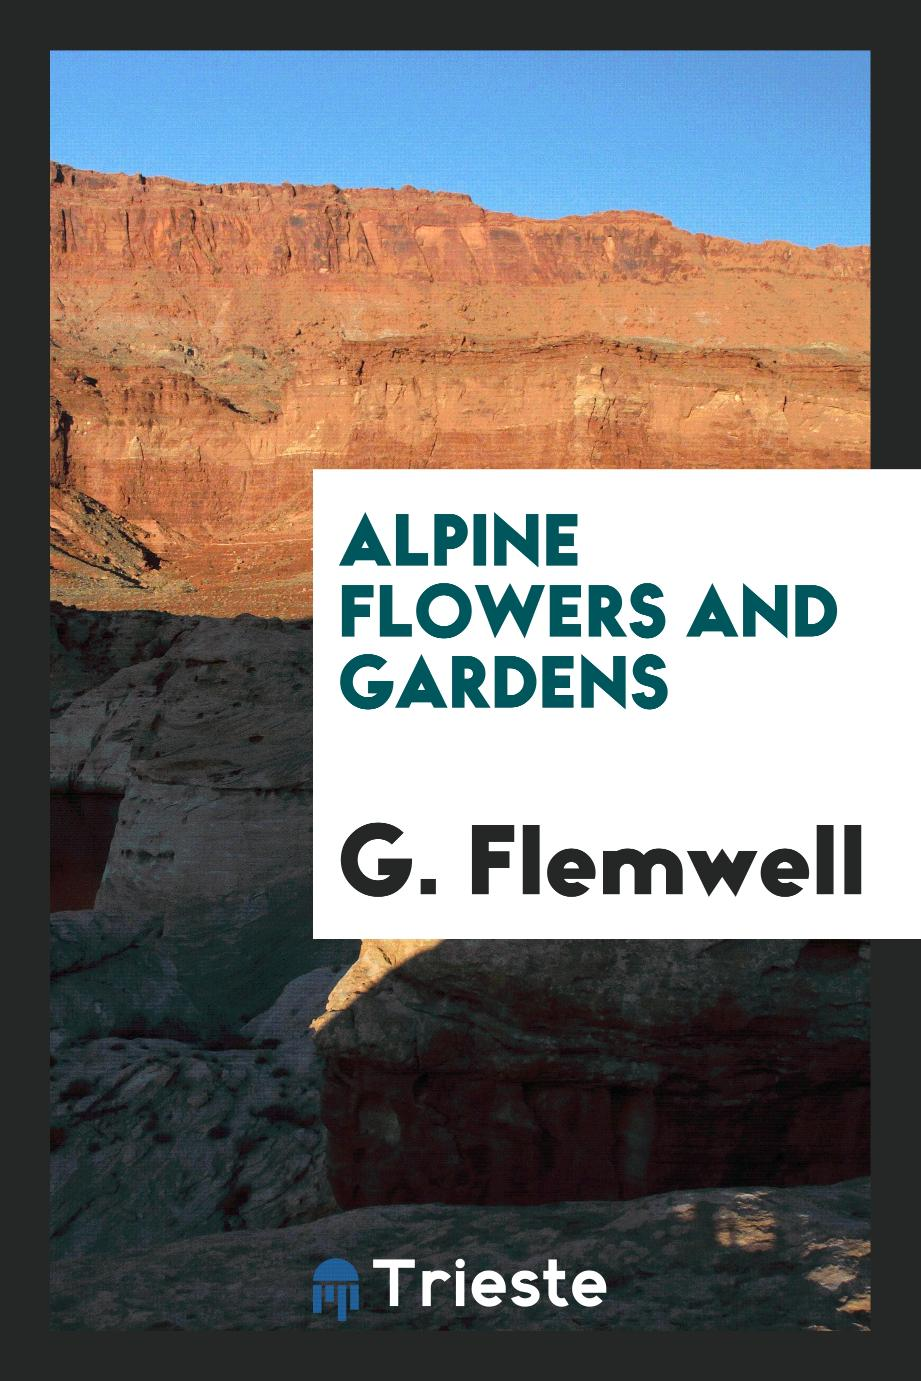 Alpine flowers and gardens